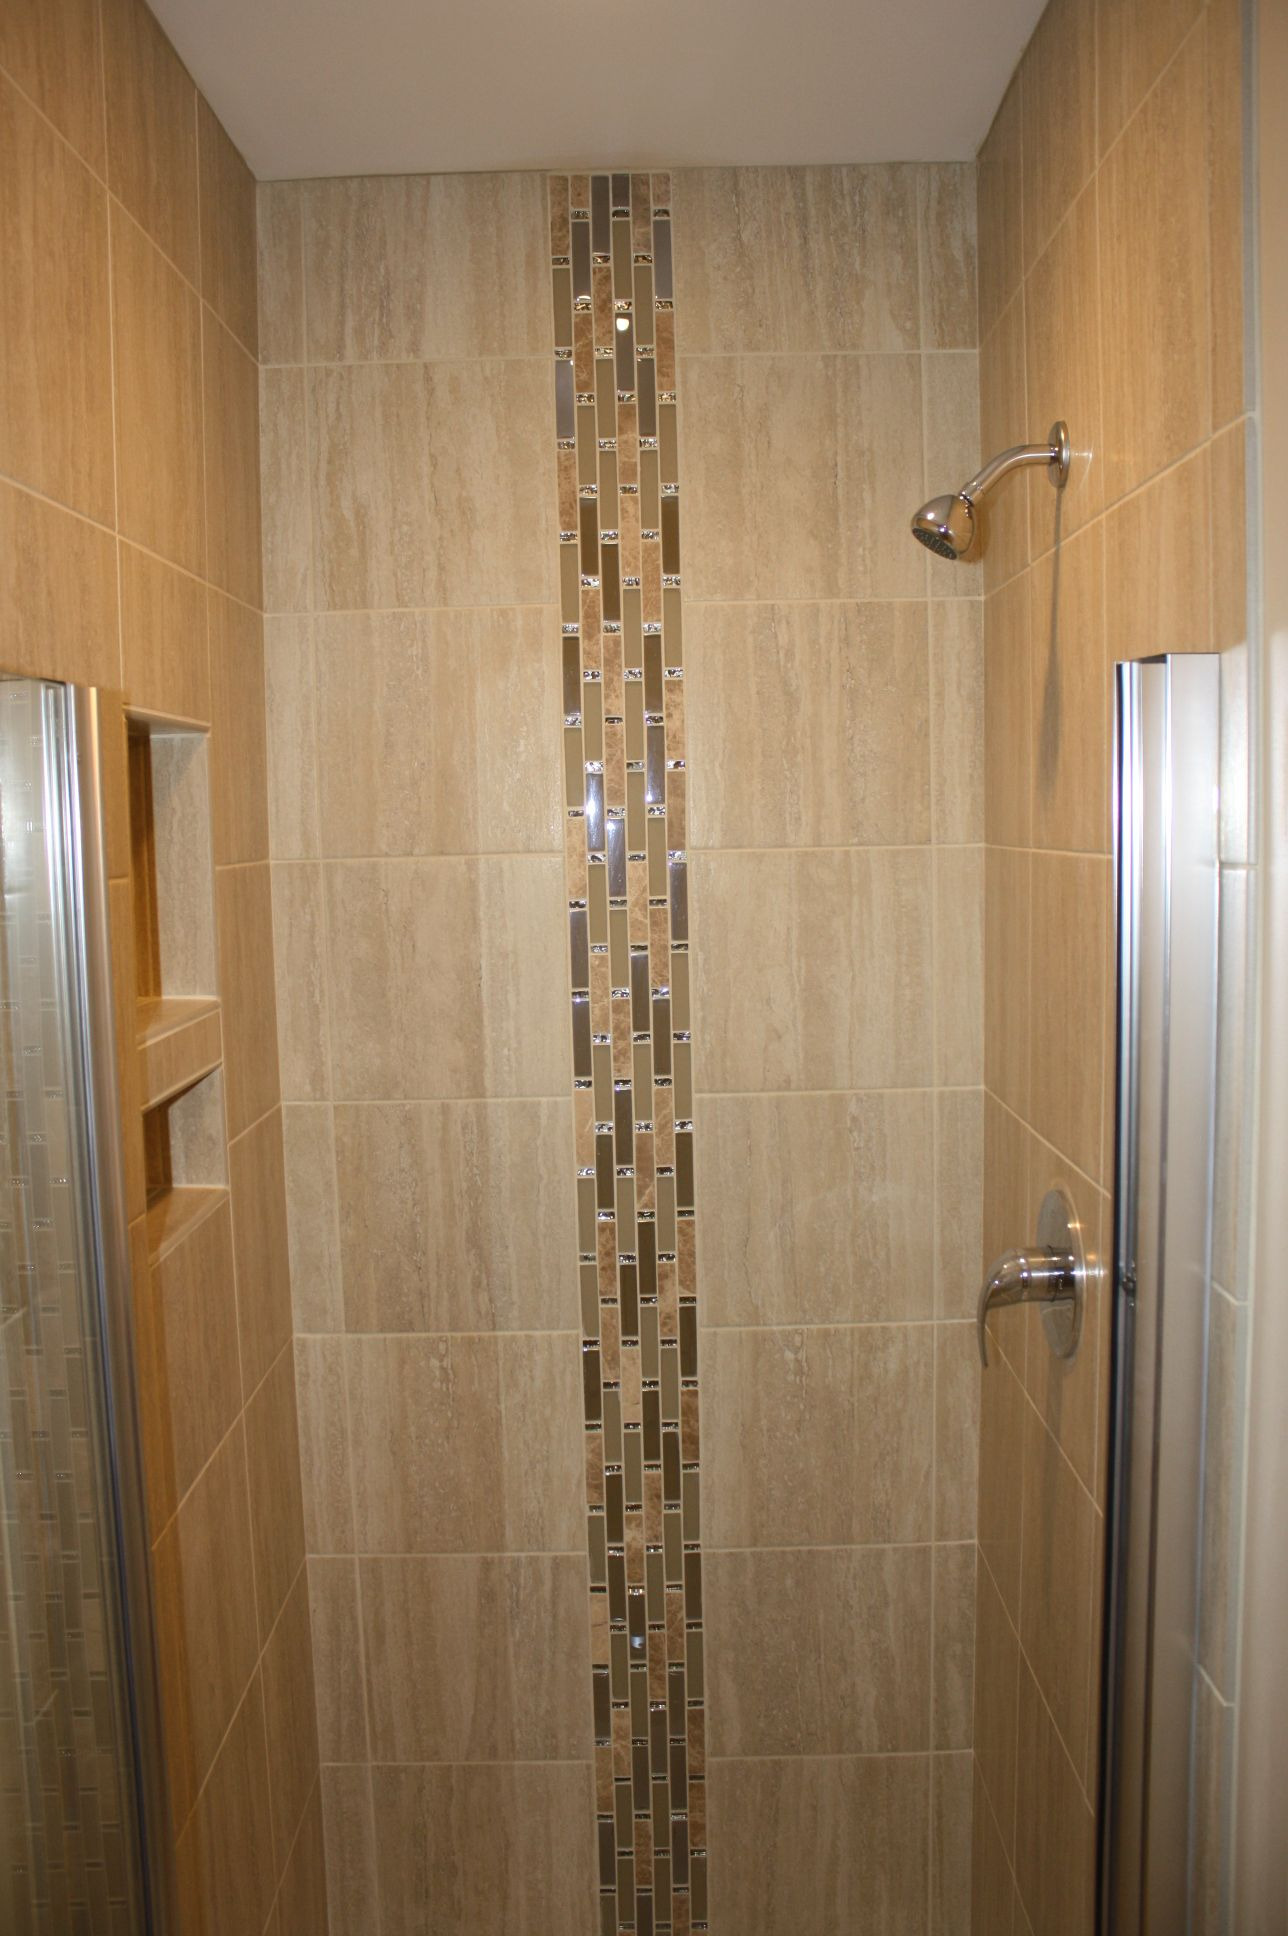 Waterfall Showers Designs 3x3 39 Shower Area Using 12x12 Quot Porcelain Tiles With A